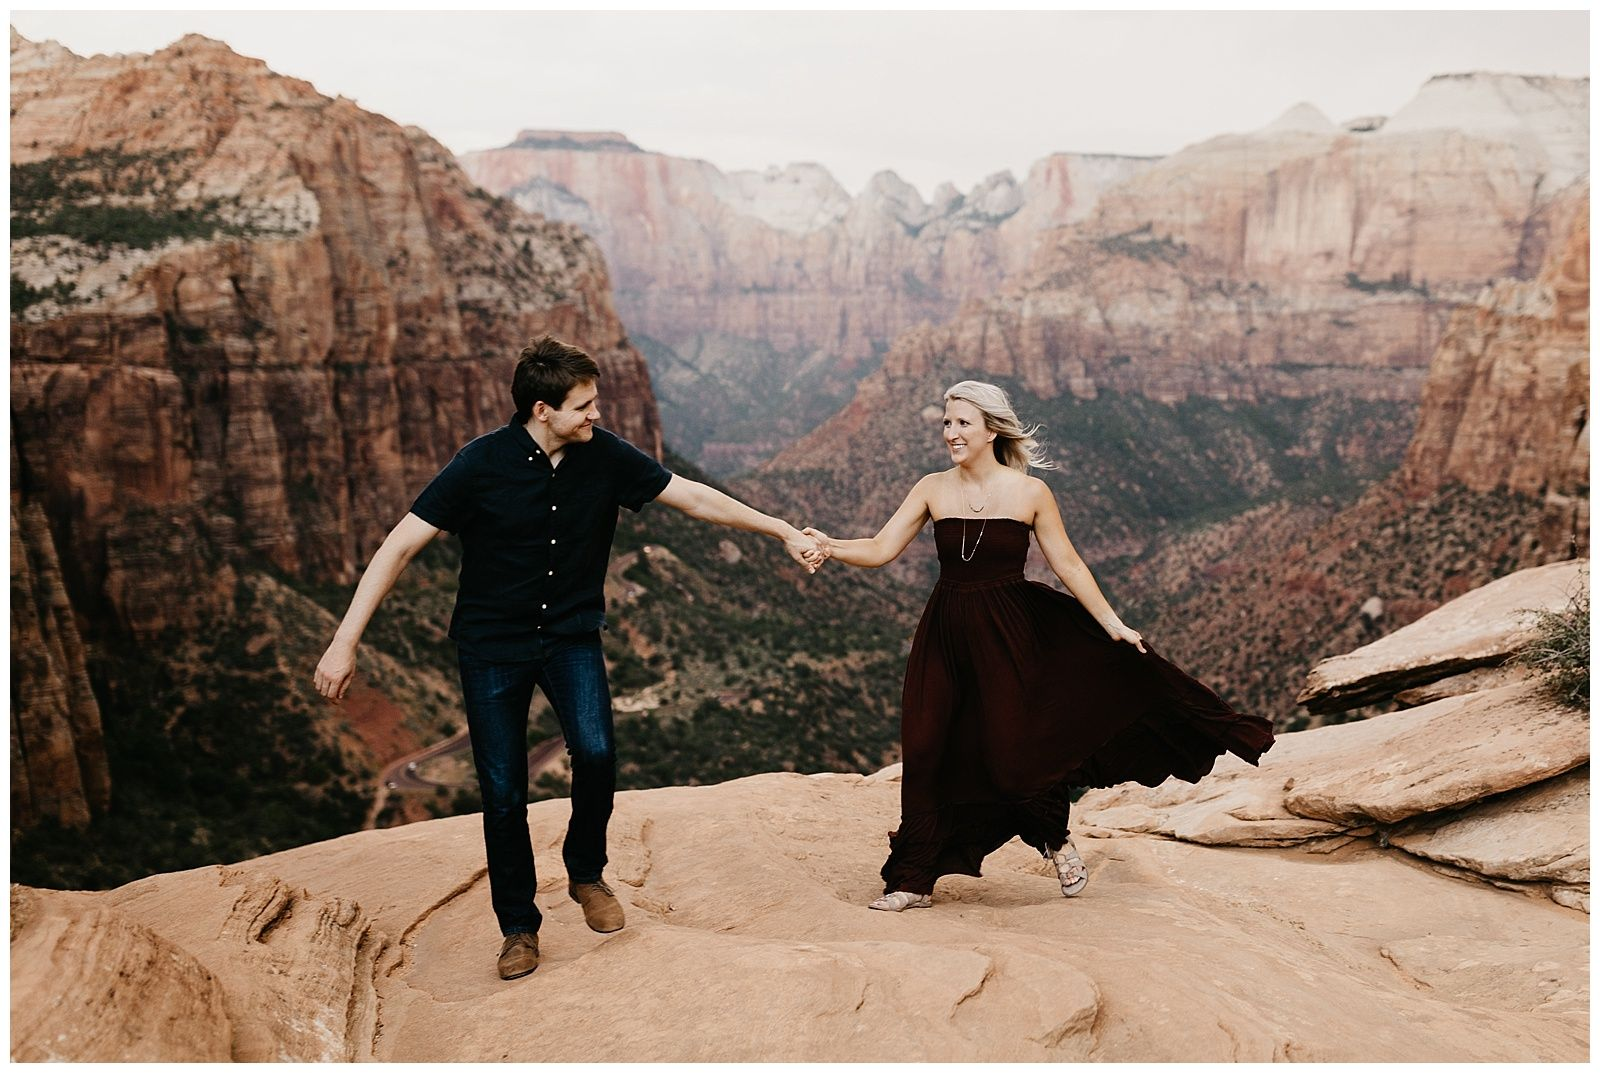 Megan And Andrew Adventurous Engagement Session In Zion National Park Adventure Engagement Photos Utah Wedding Photography Red Rock Wedding